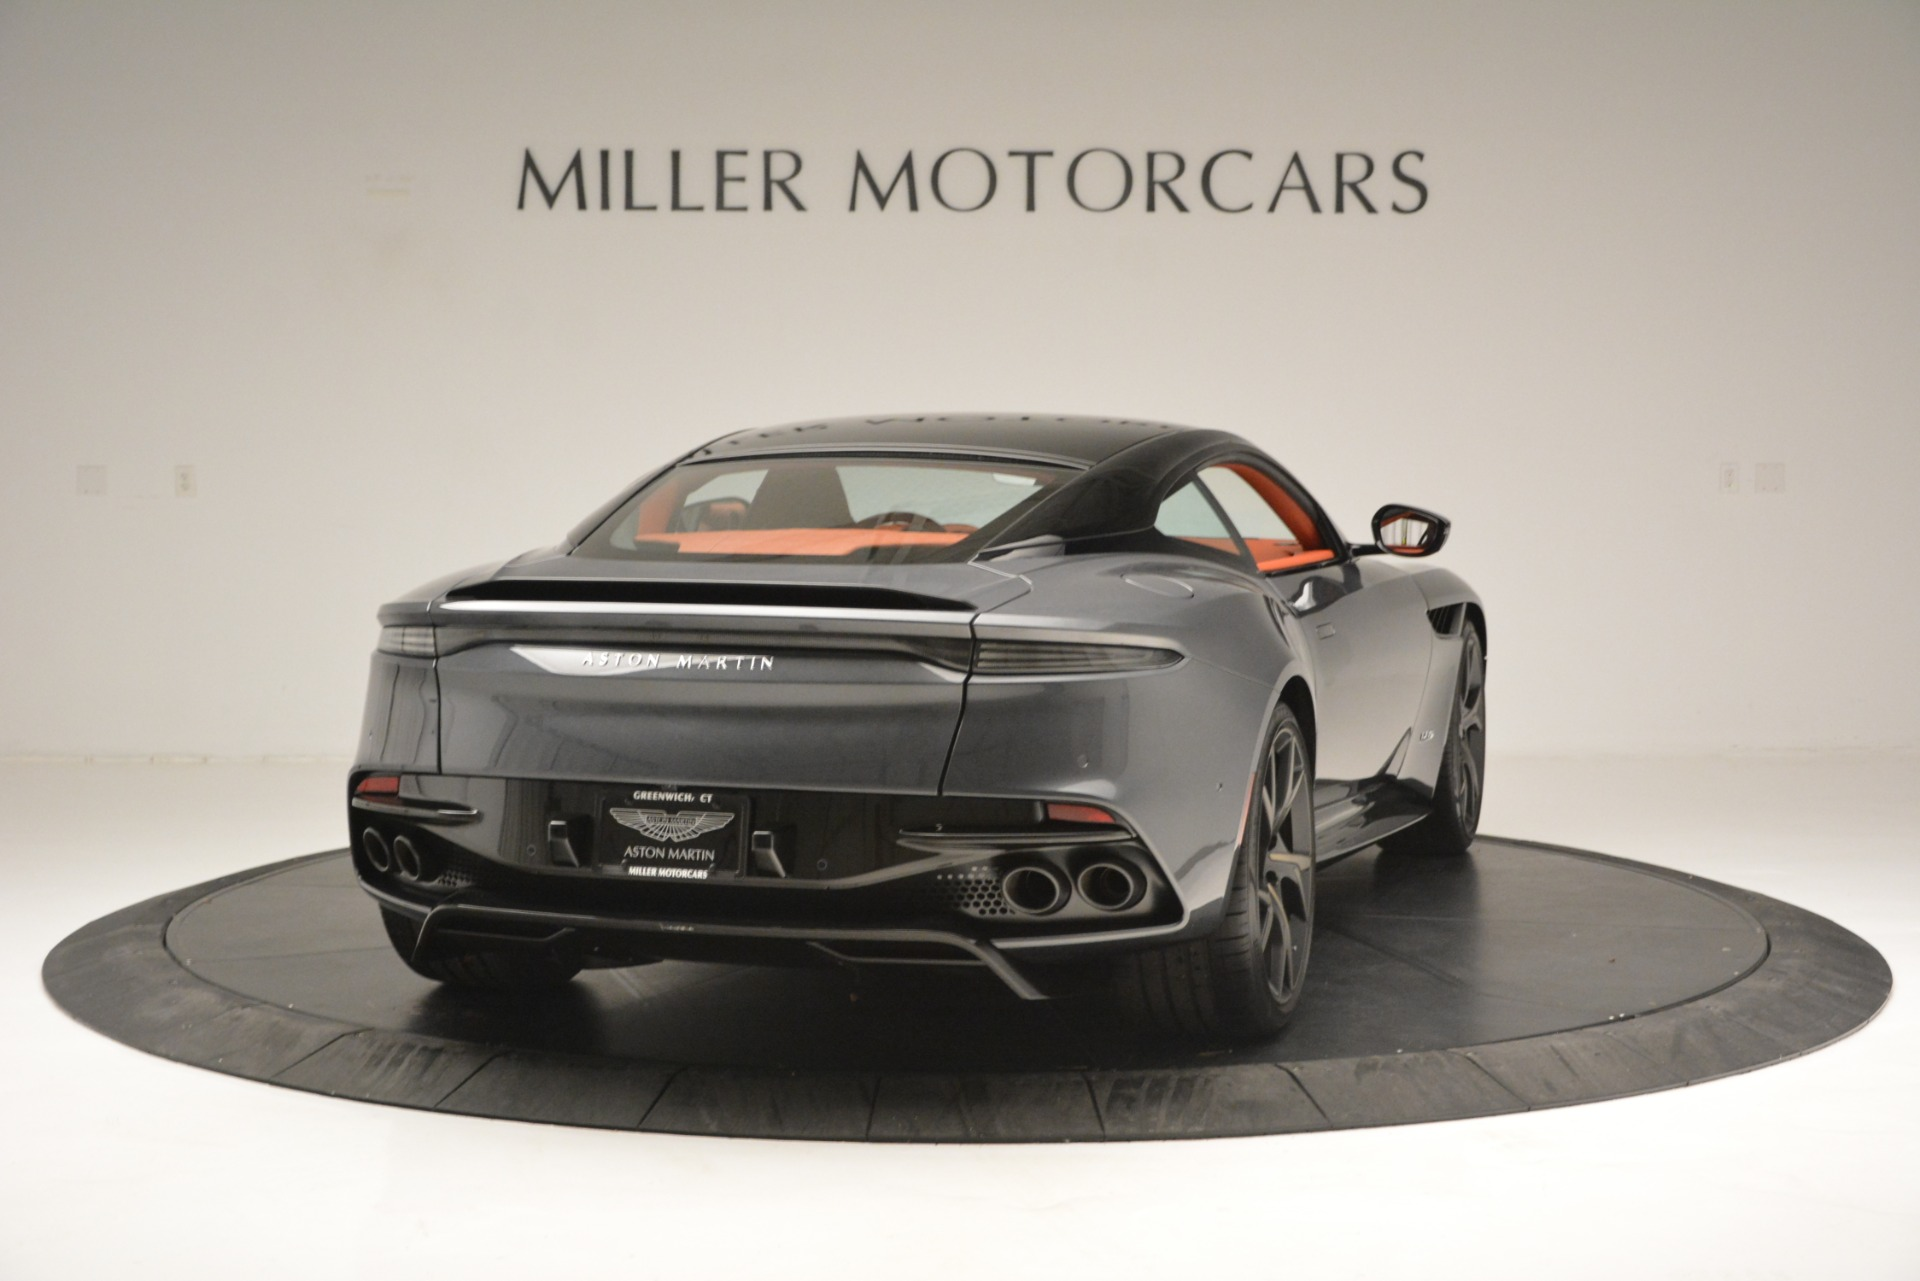 New 2019 Aston Martin DBS Superleggera For Sale In Westport, CT 2827_p7